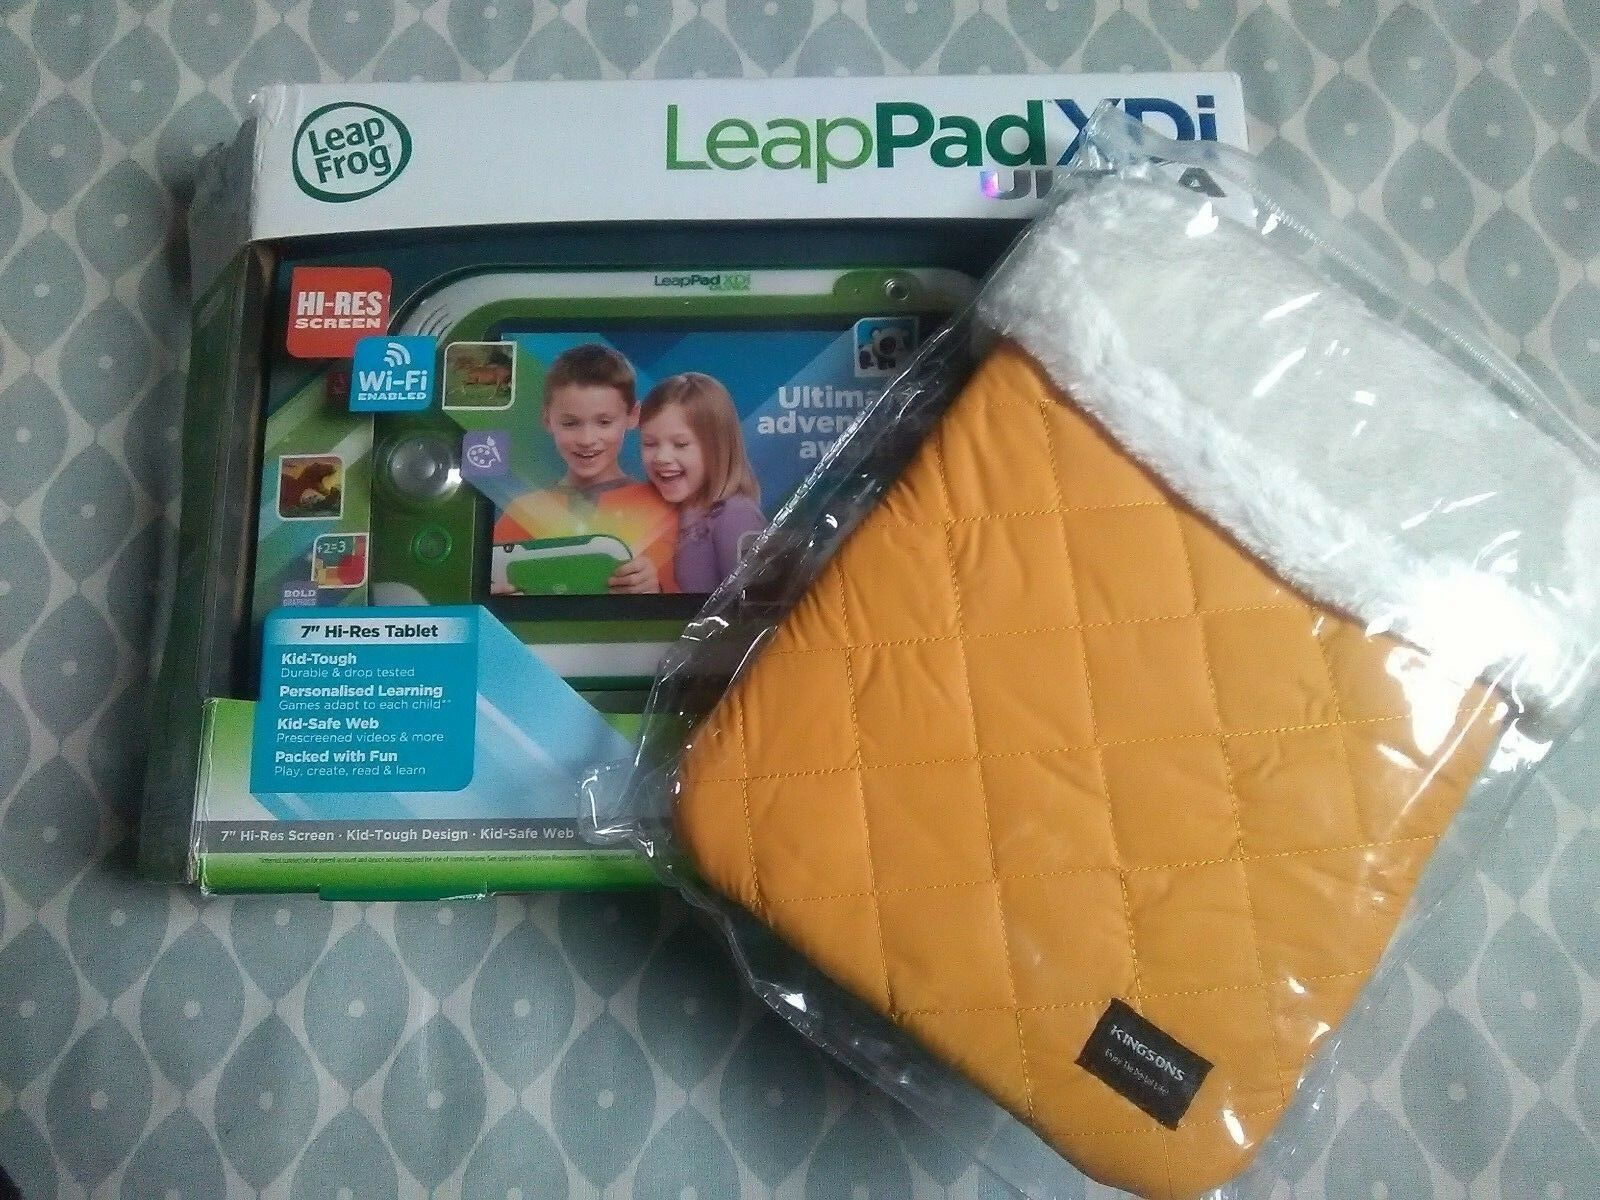 Leappad Ultra XDI by Leapfrog - Green Tablet with new case